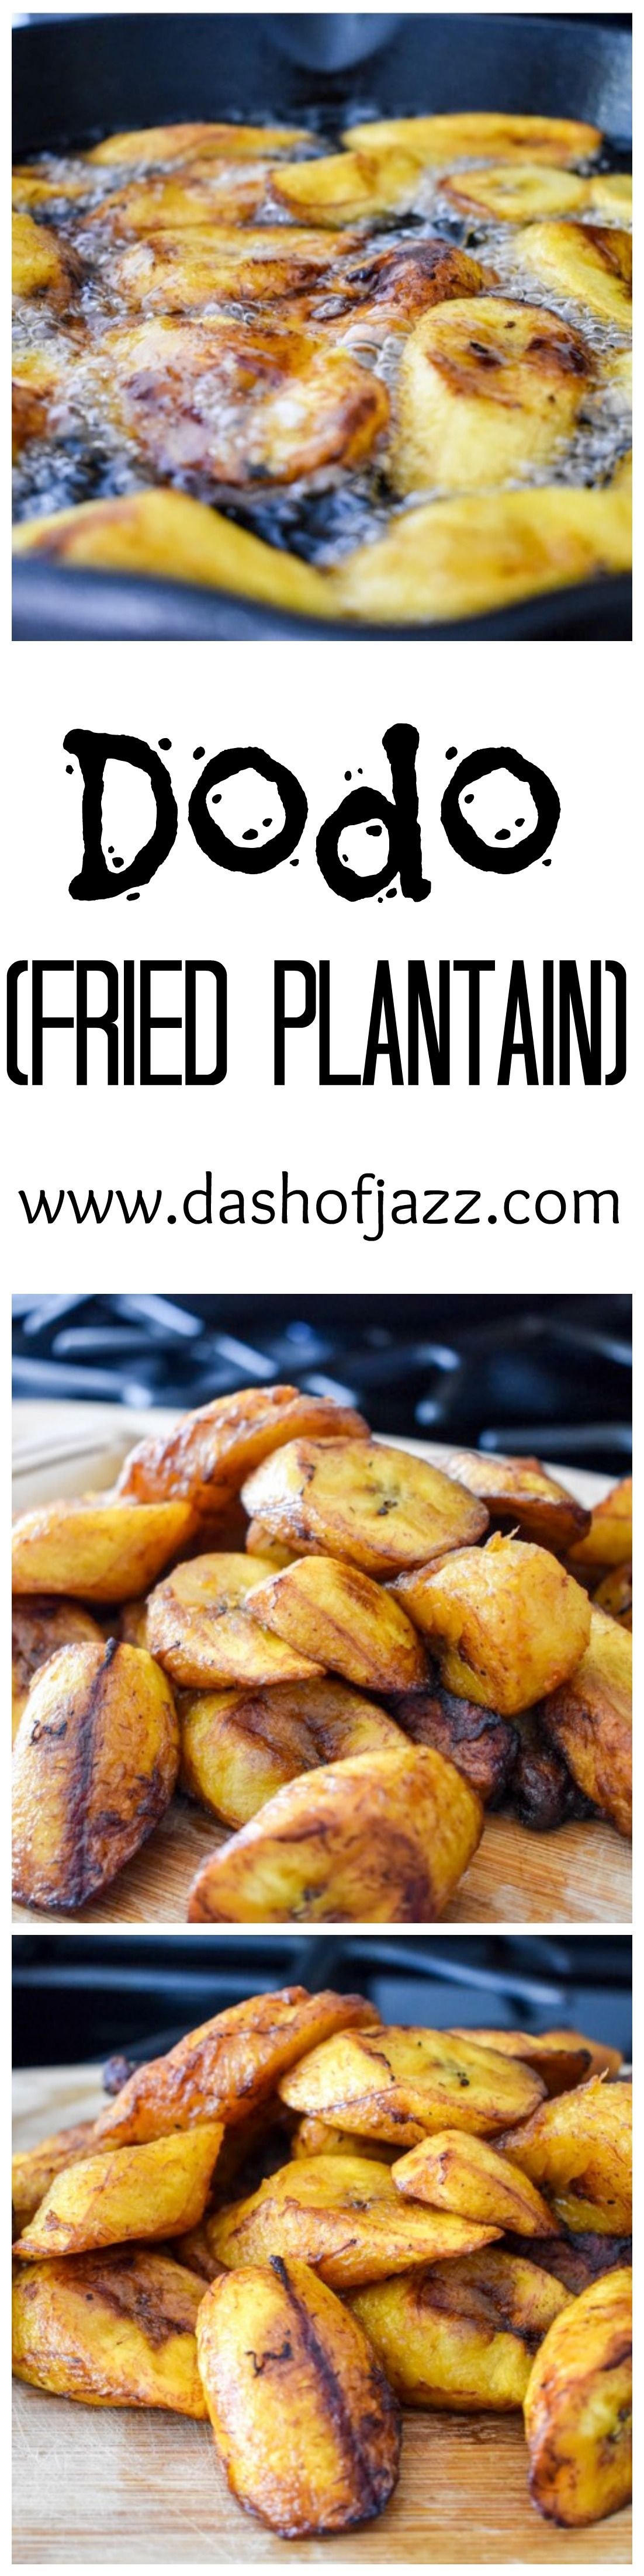 Dodo fried plantain recipe fried plantain latin american caribbean recipes forumfinder Image collections